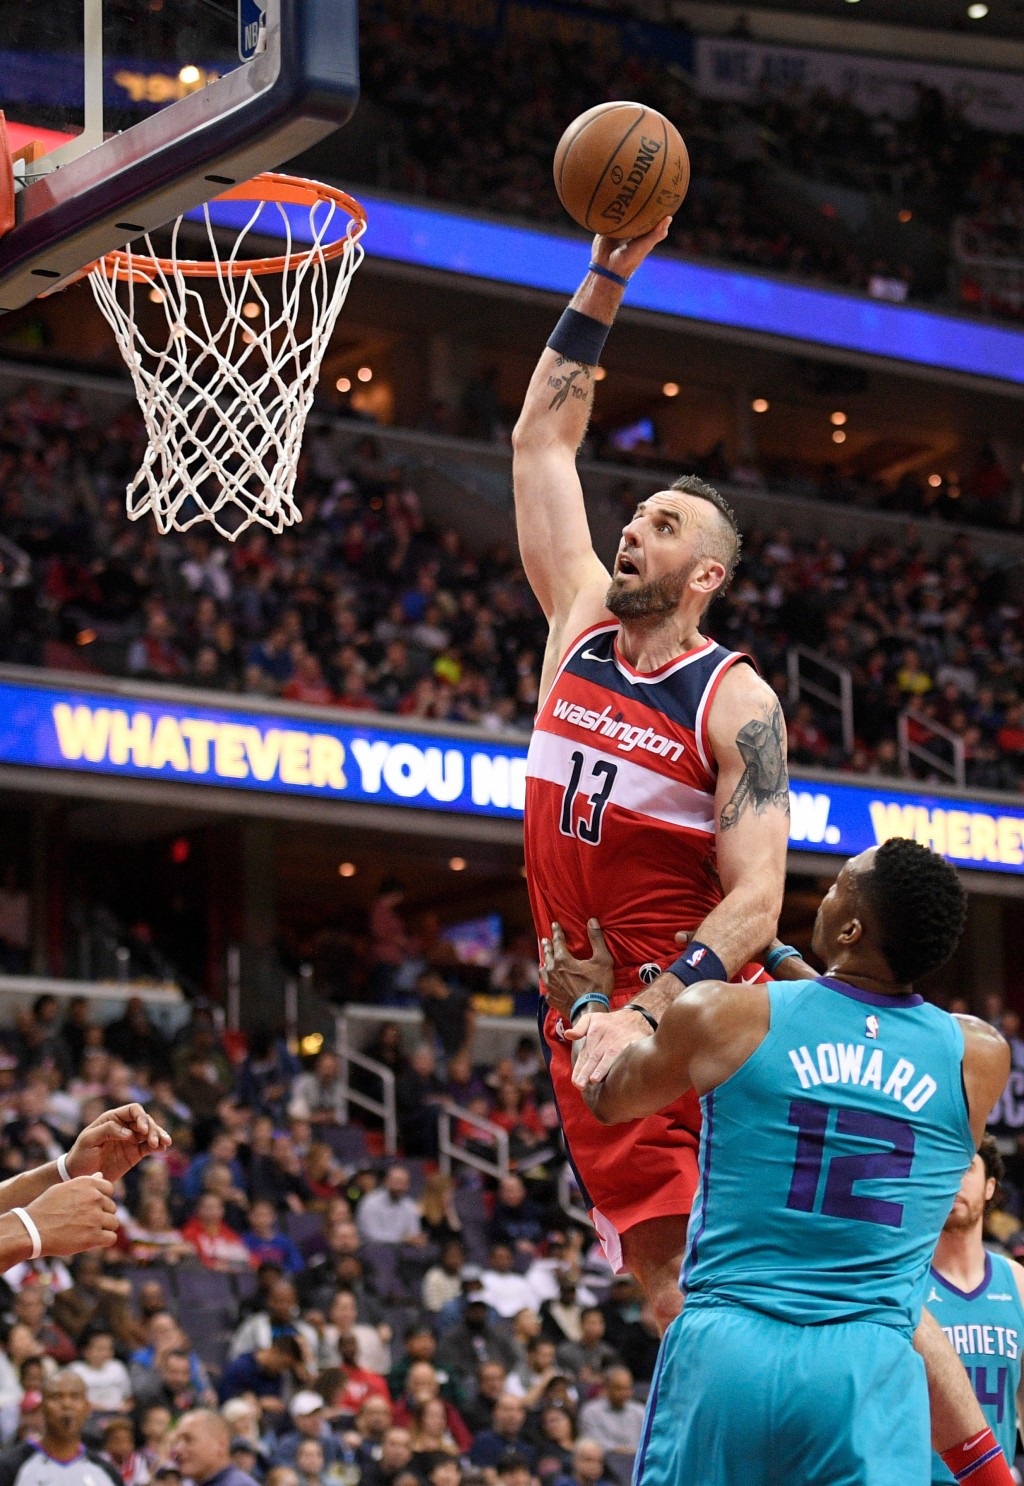 Washington Wizards center Marcin Gortat (13), of Poland, goes to the basket against Charlotte Hornets center Dwight Howard (12) during the second half